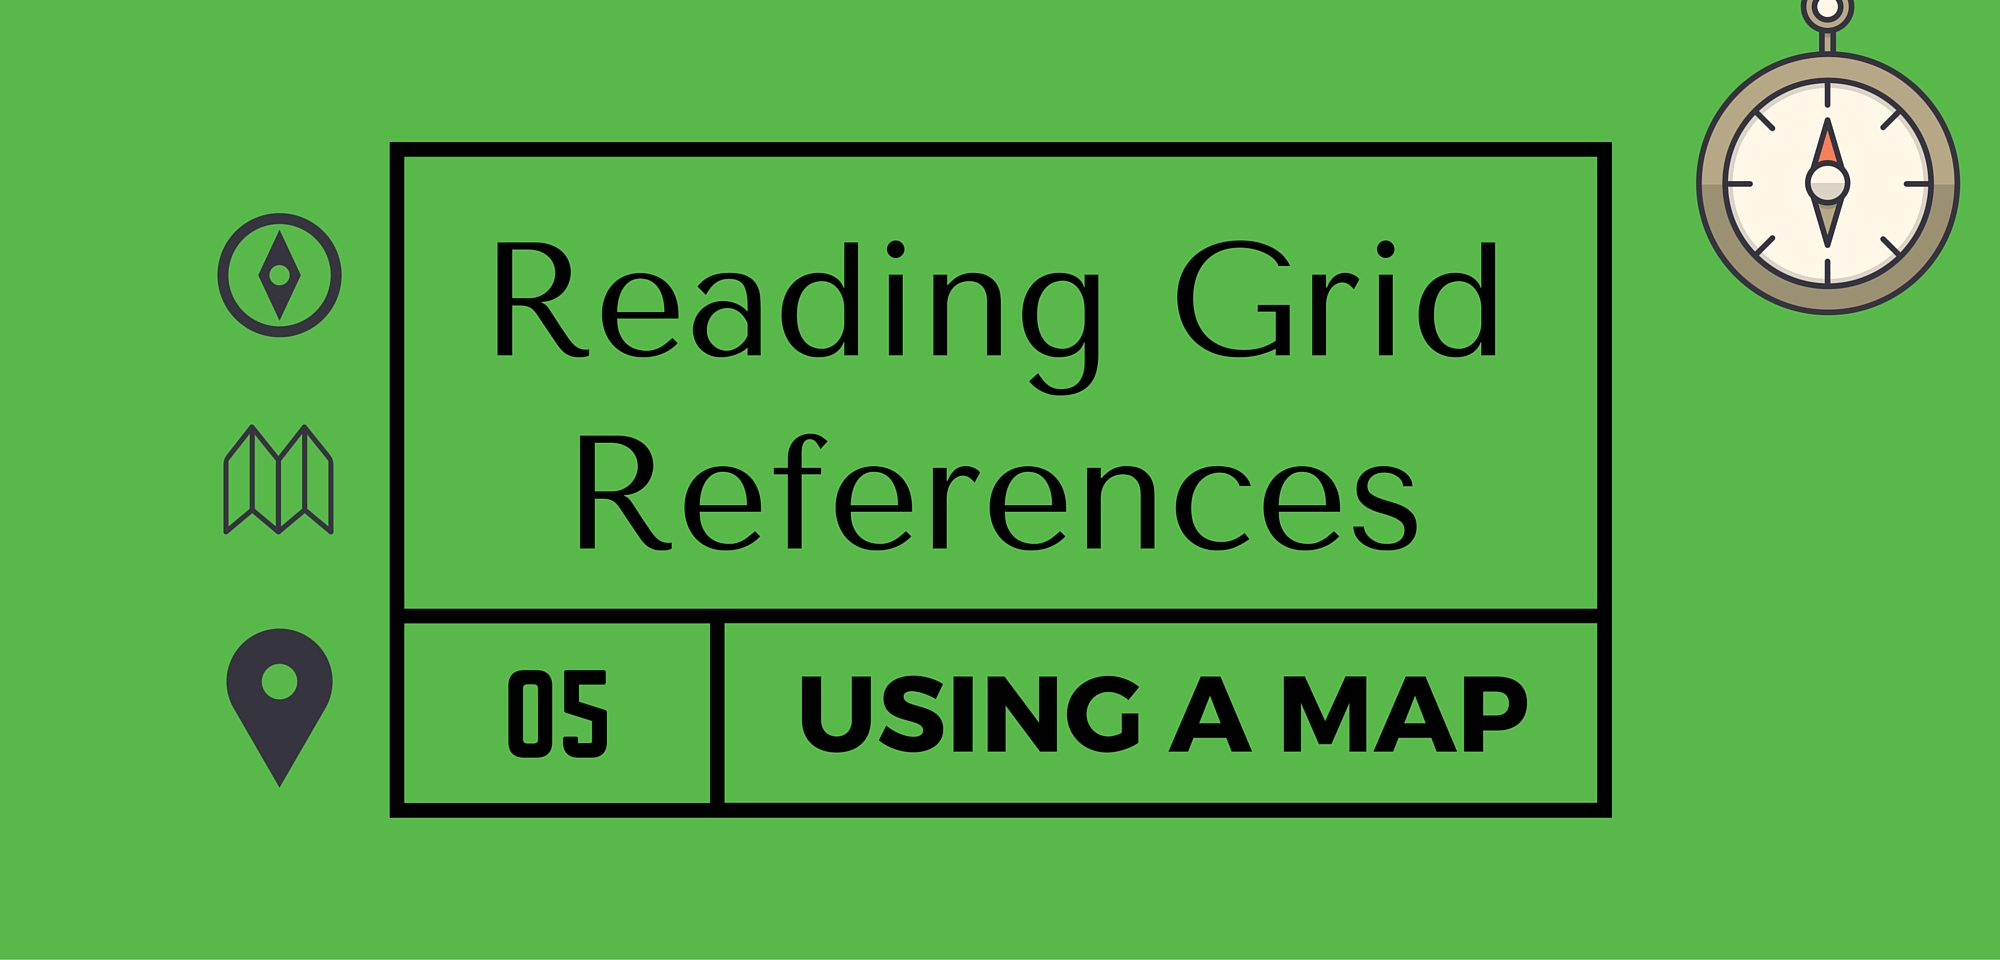 Reading Grid References